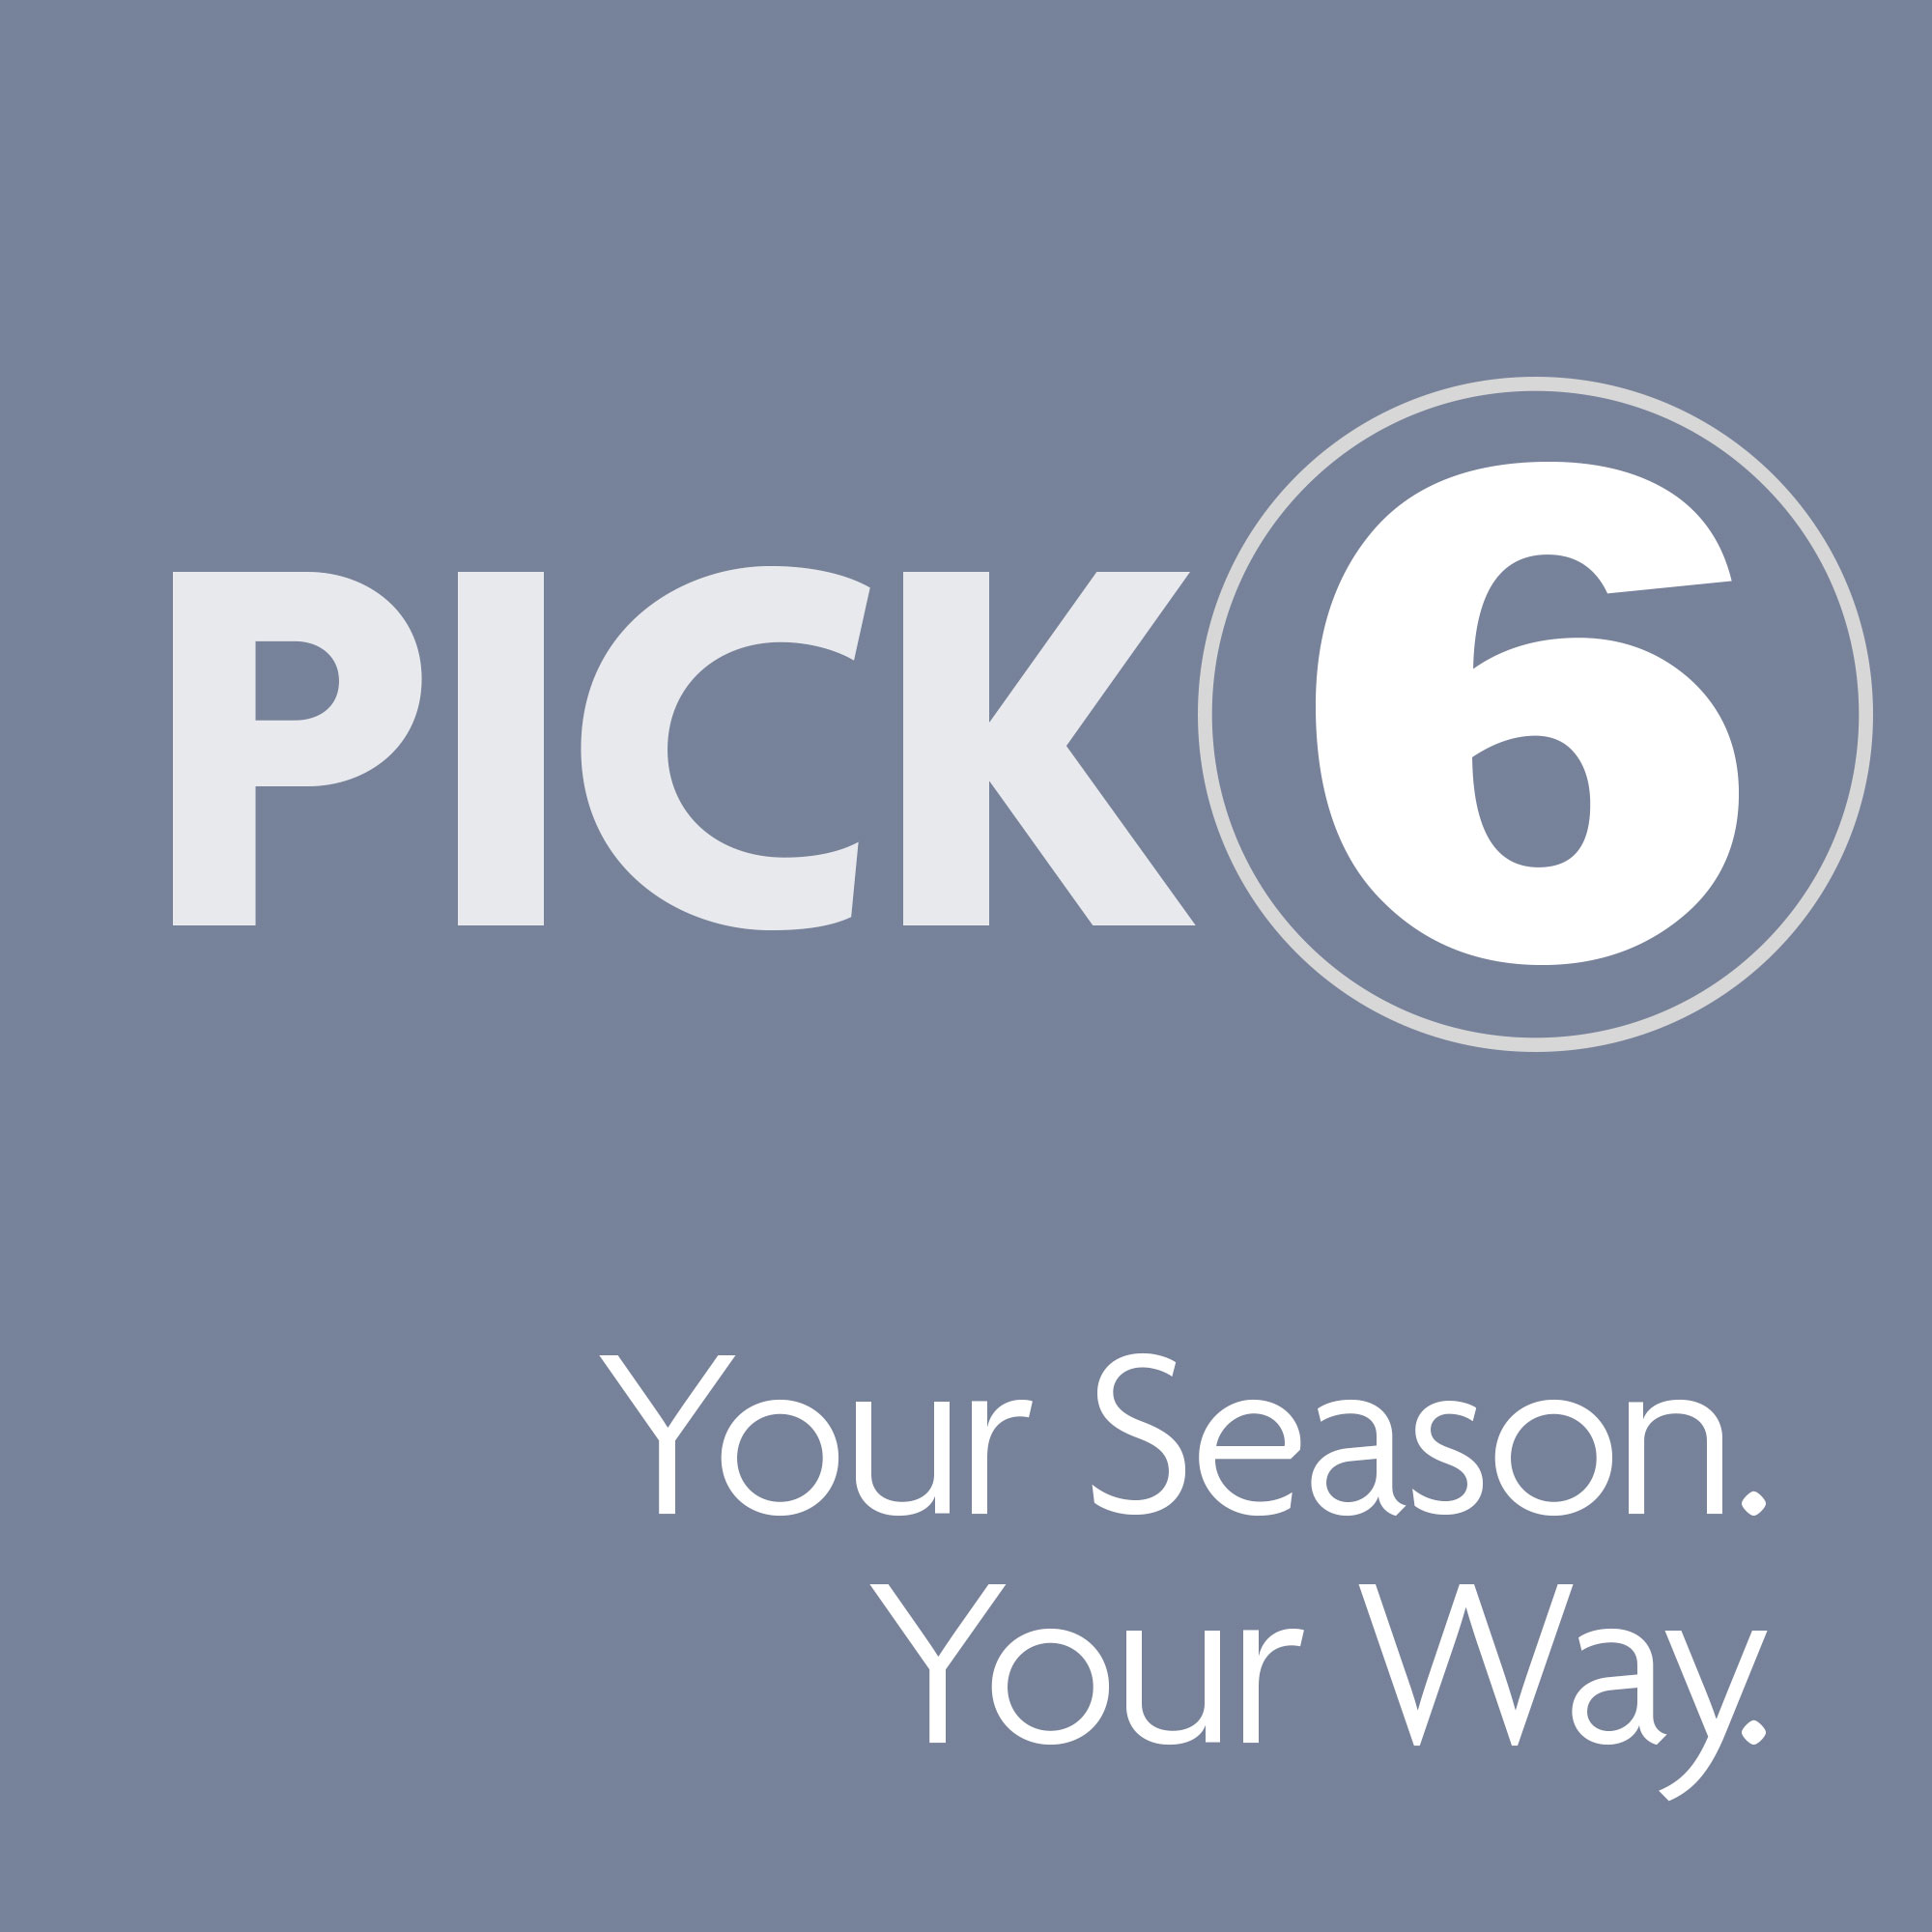 Pick 6 or More Logo